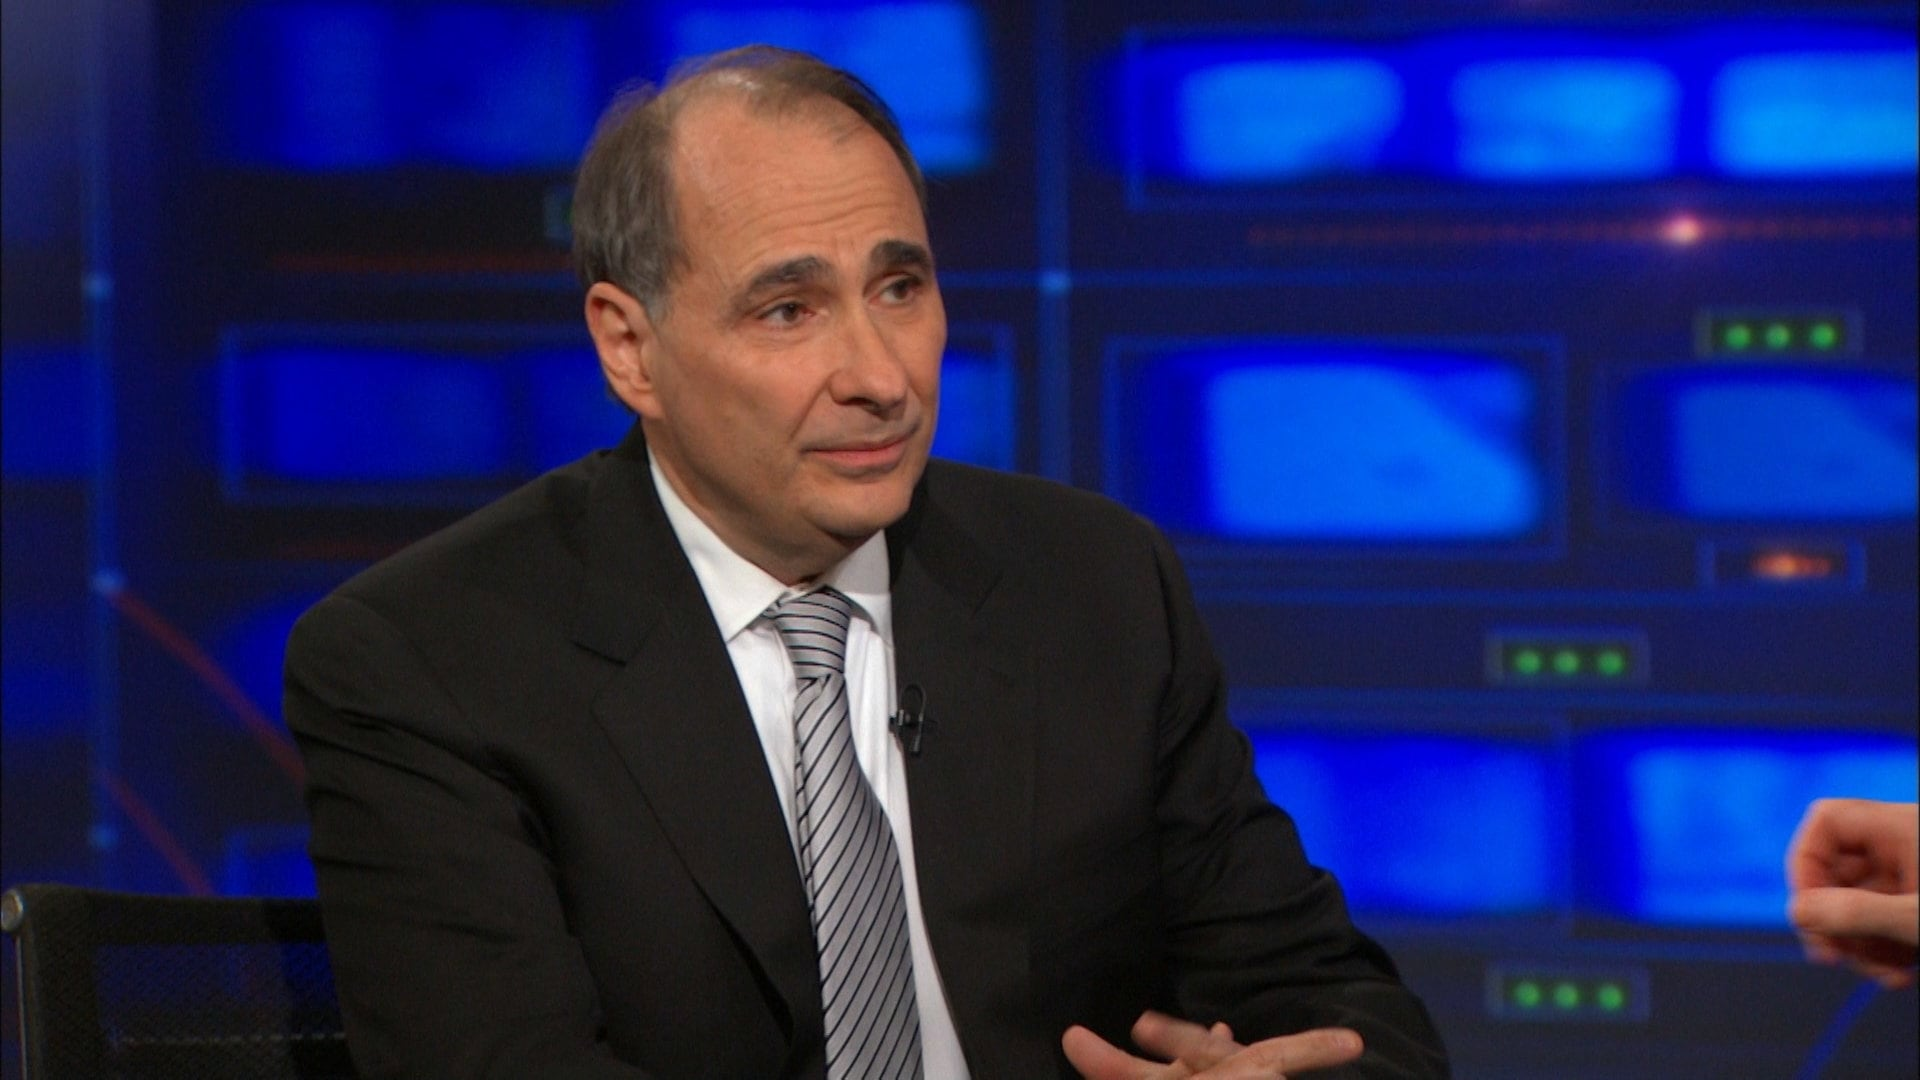 The Daily Show with Trevor Noah Season 20 :Episode 62  David Axelrod